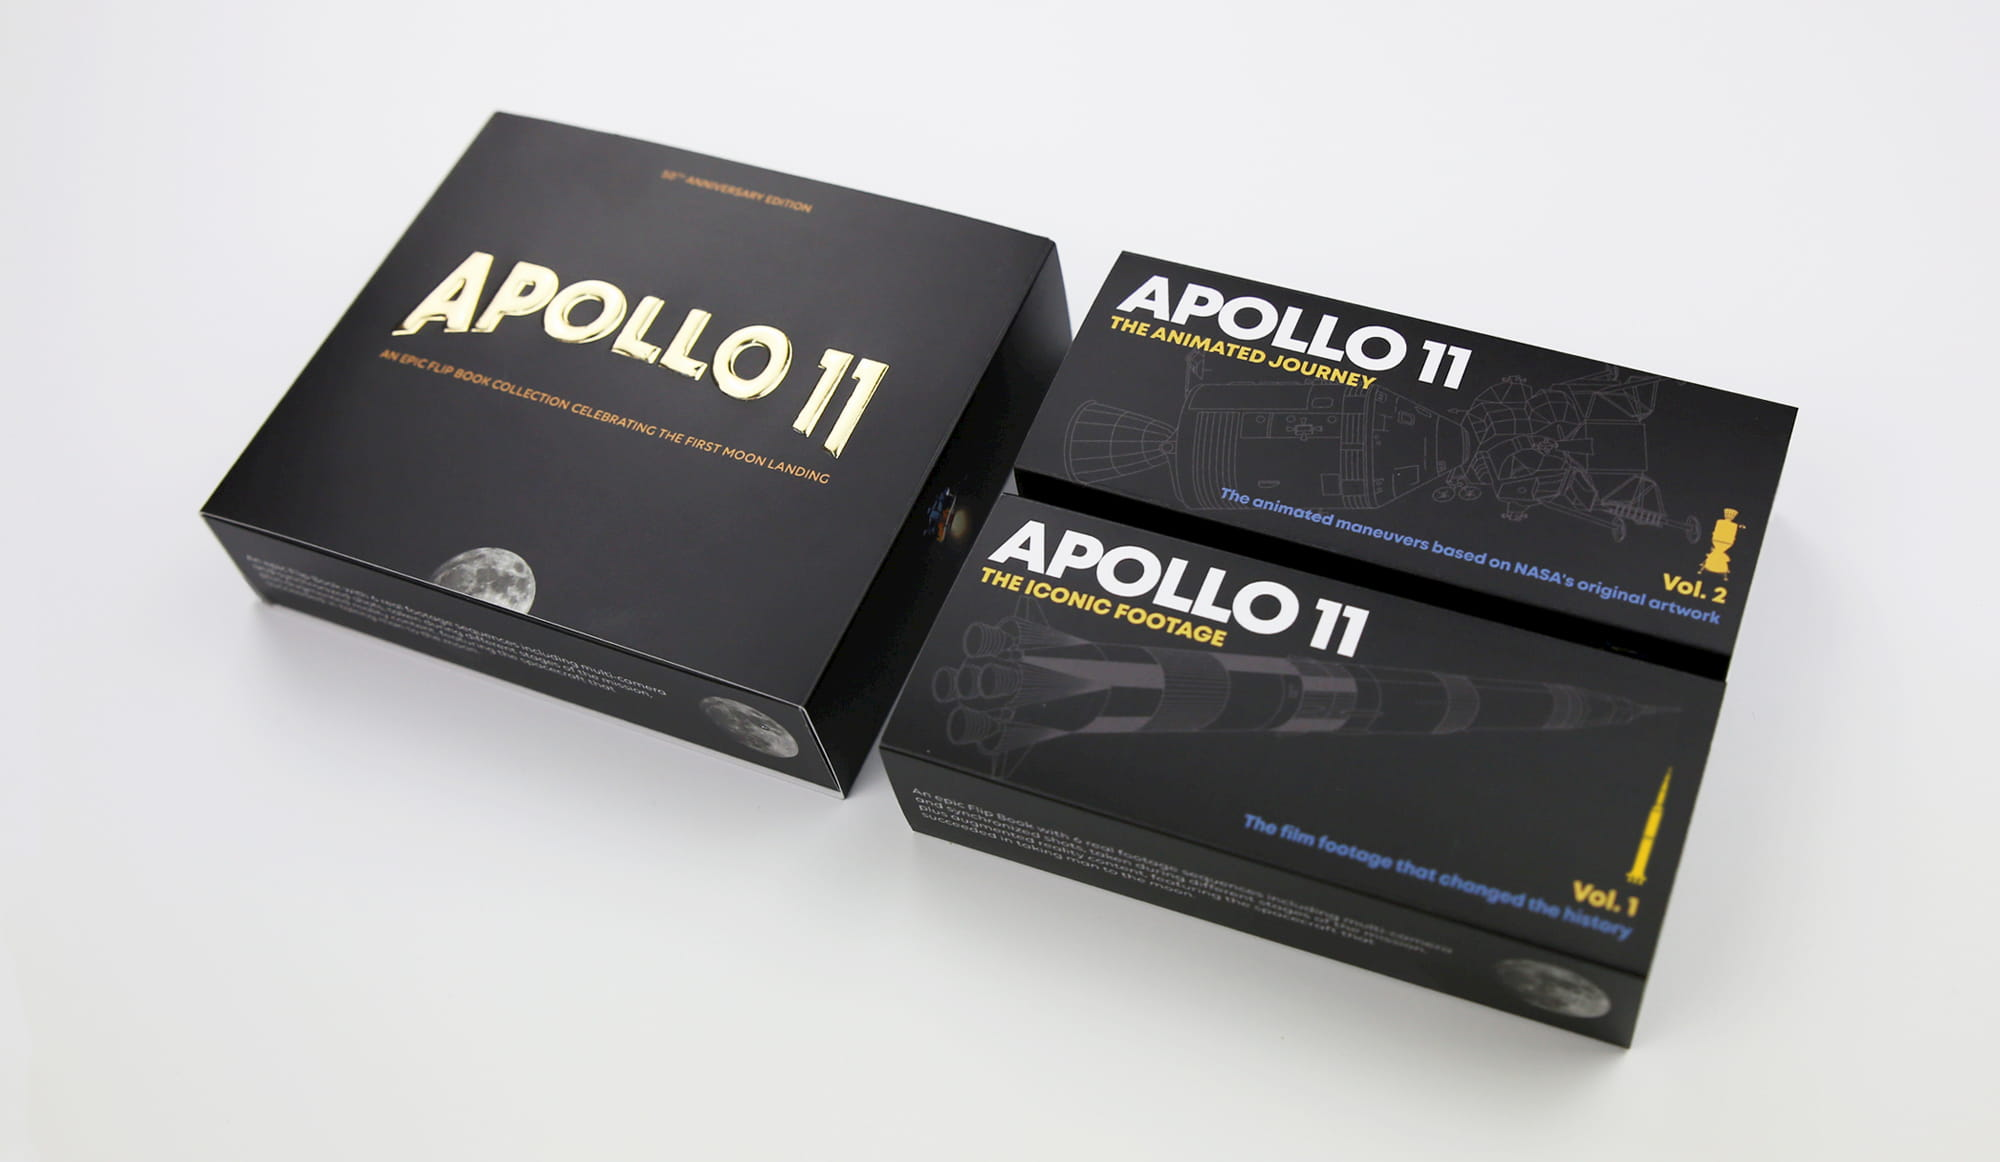 Apollo 11 - An Epic Moon Landing Flip Book Edition